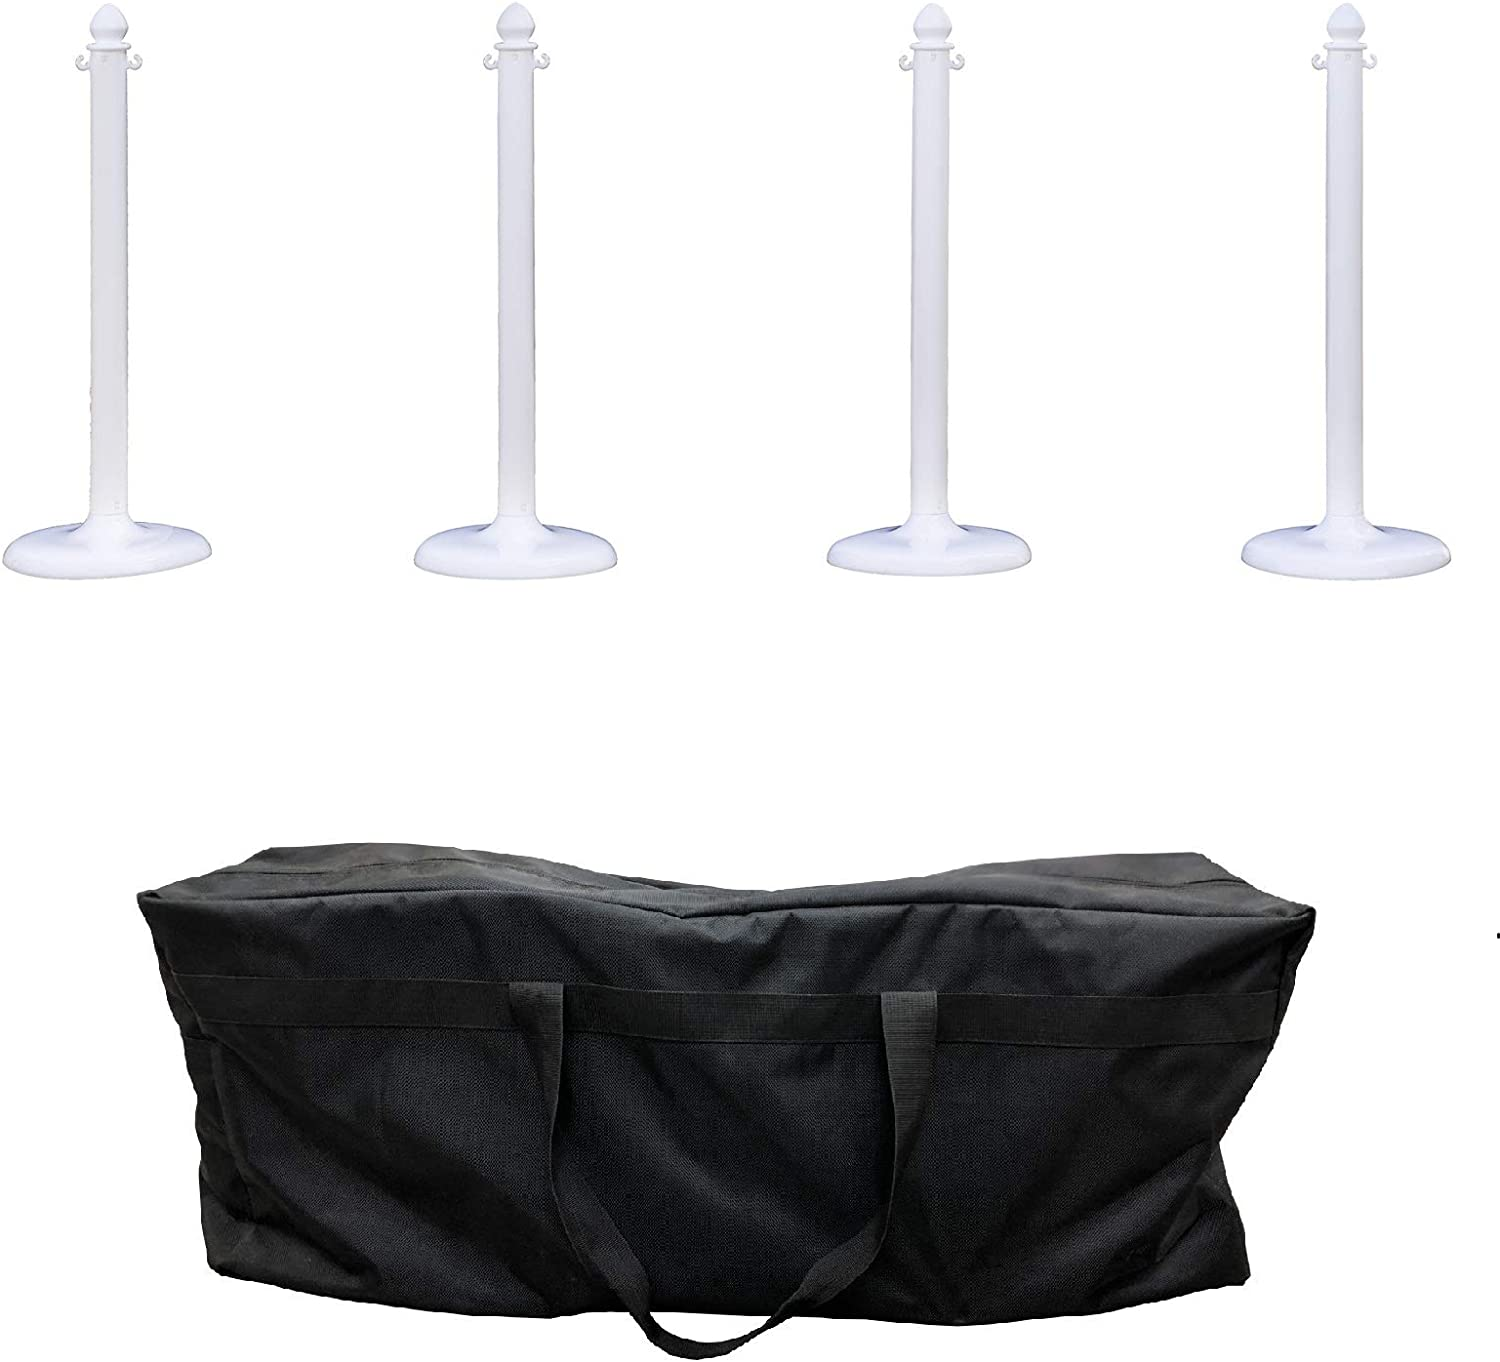 Max 56% OFF Seasonal Wrap Introduction Plastic Stanchion w bag Crowd Control Up with White Center New